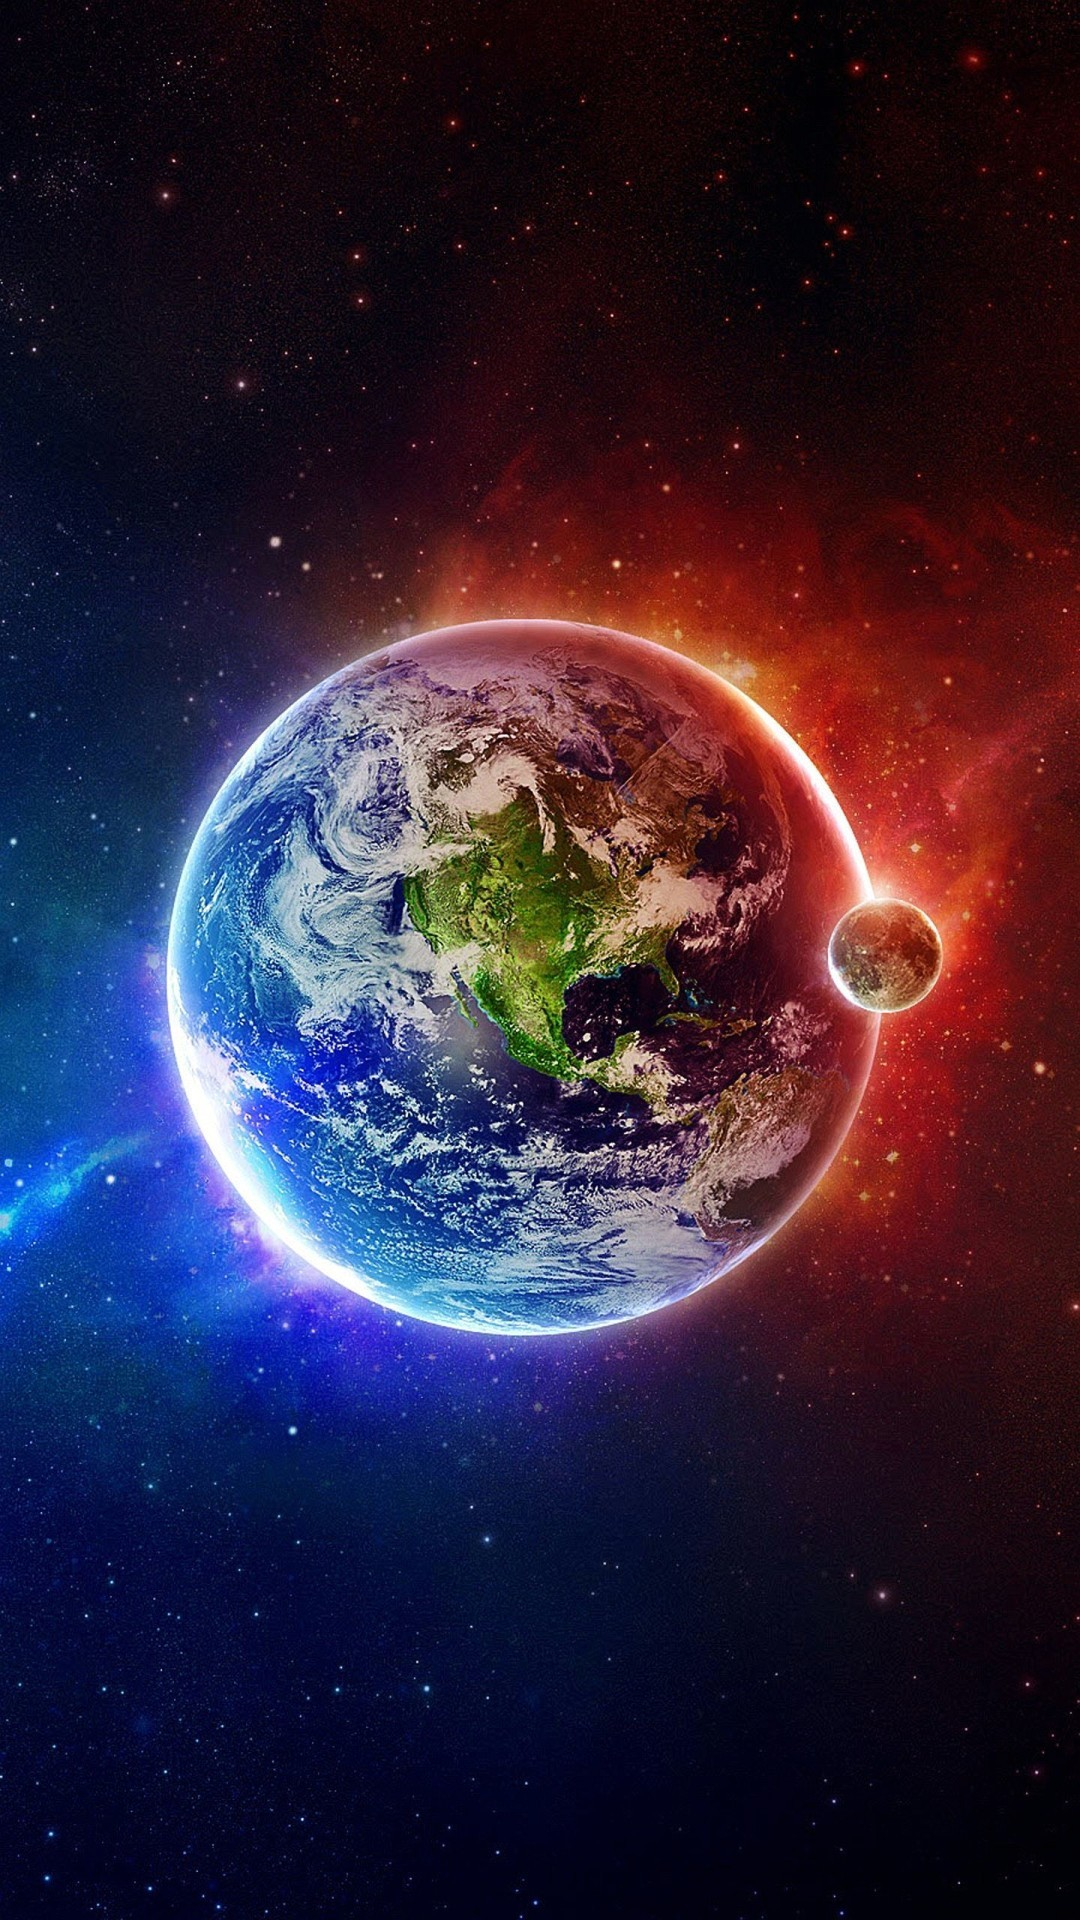 Wallpaper iphone 6 plus red blue earth 5 5 inches